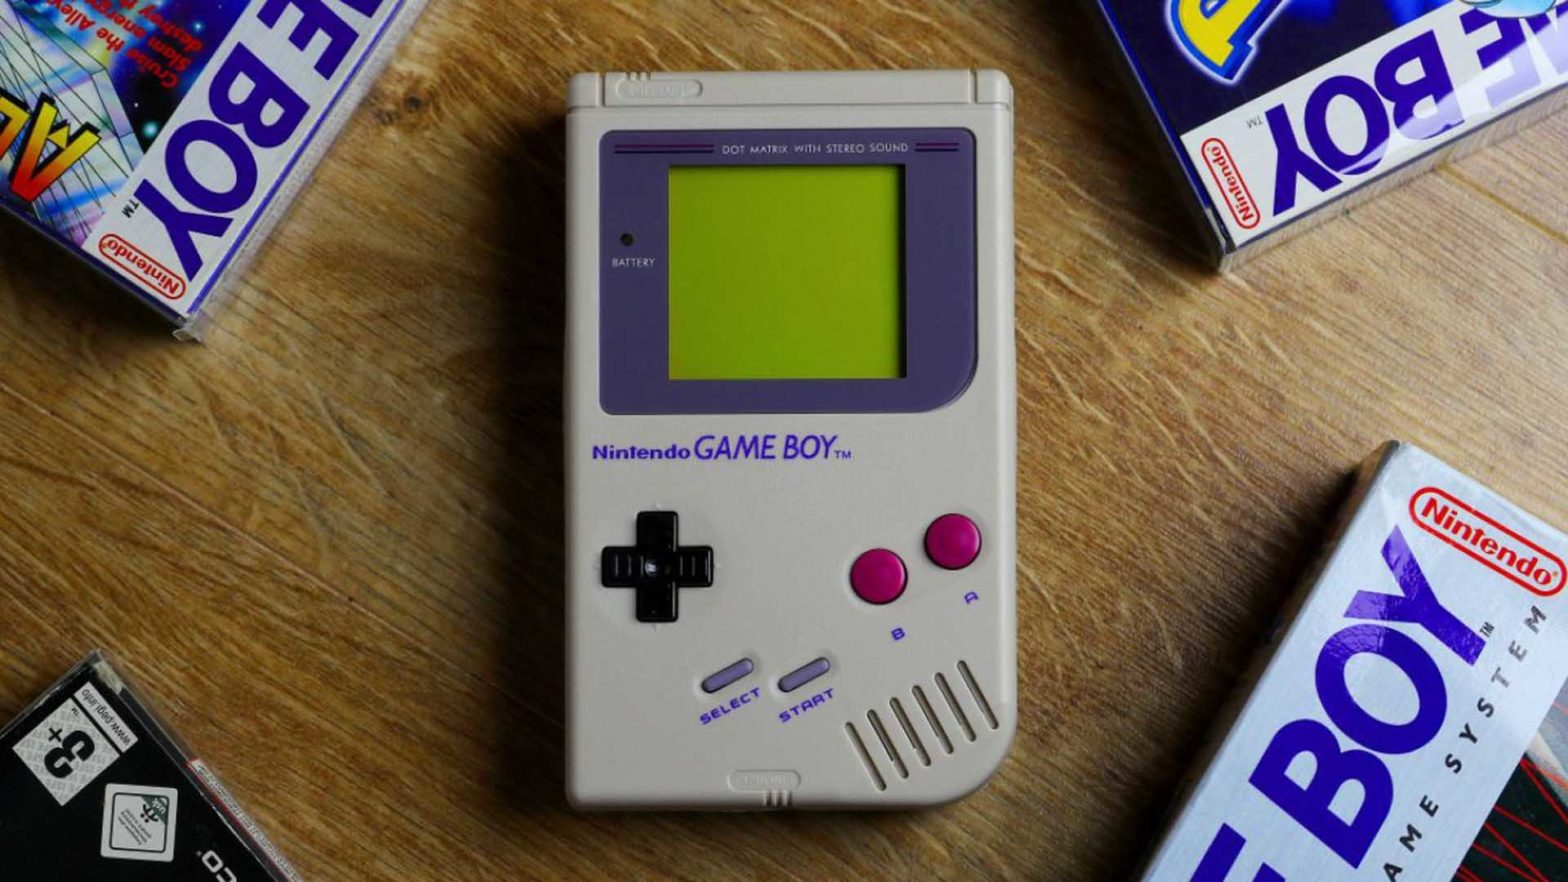 GameBoy - Promos Web 22